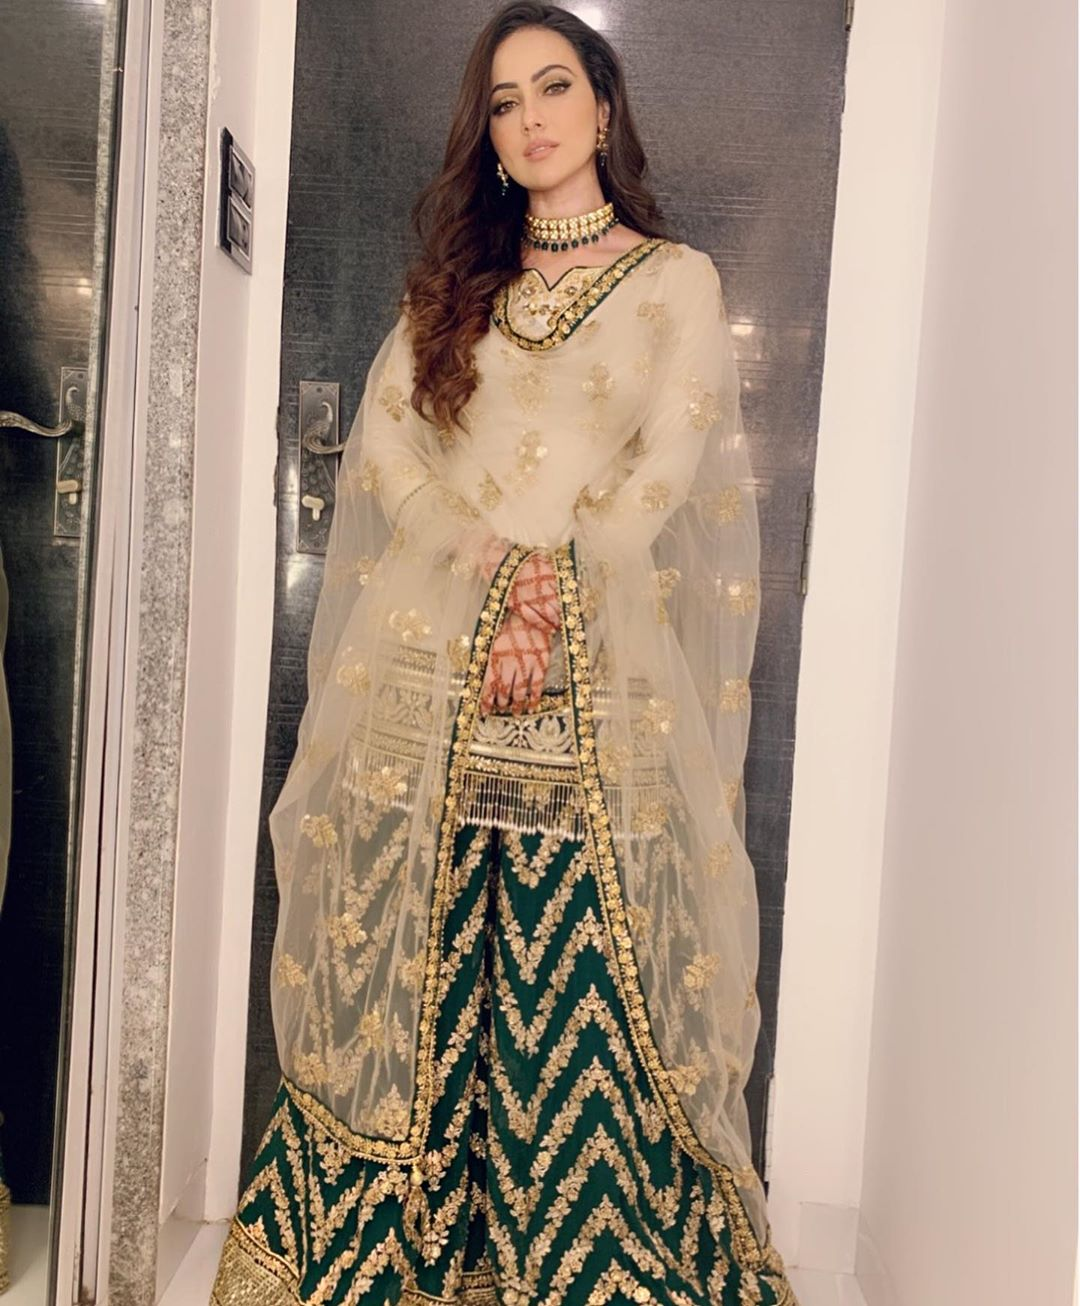 Sana Khan in green Sharara outfit